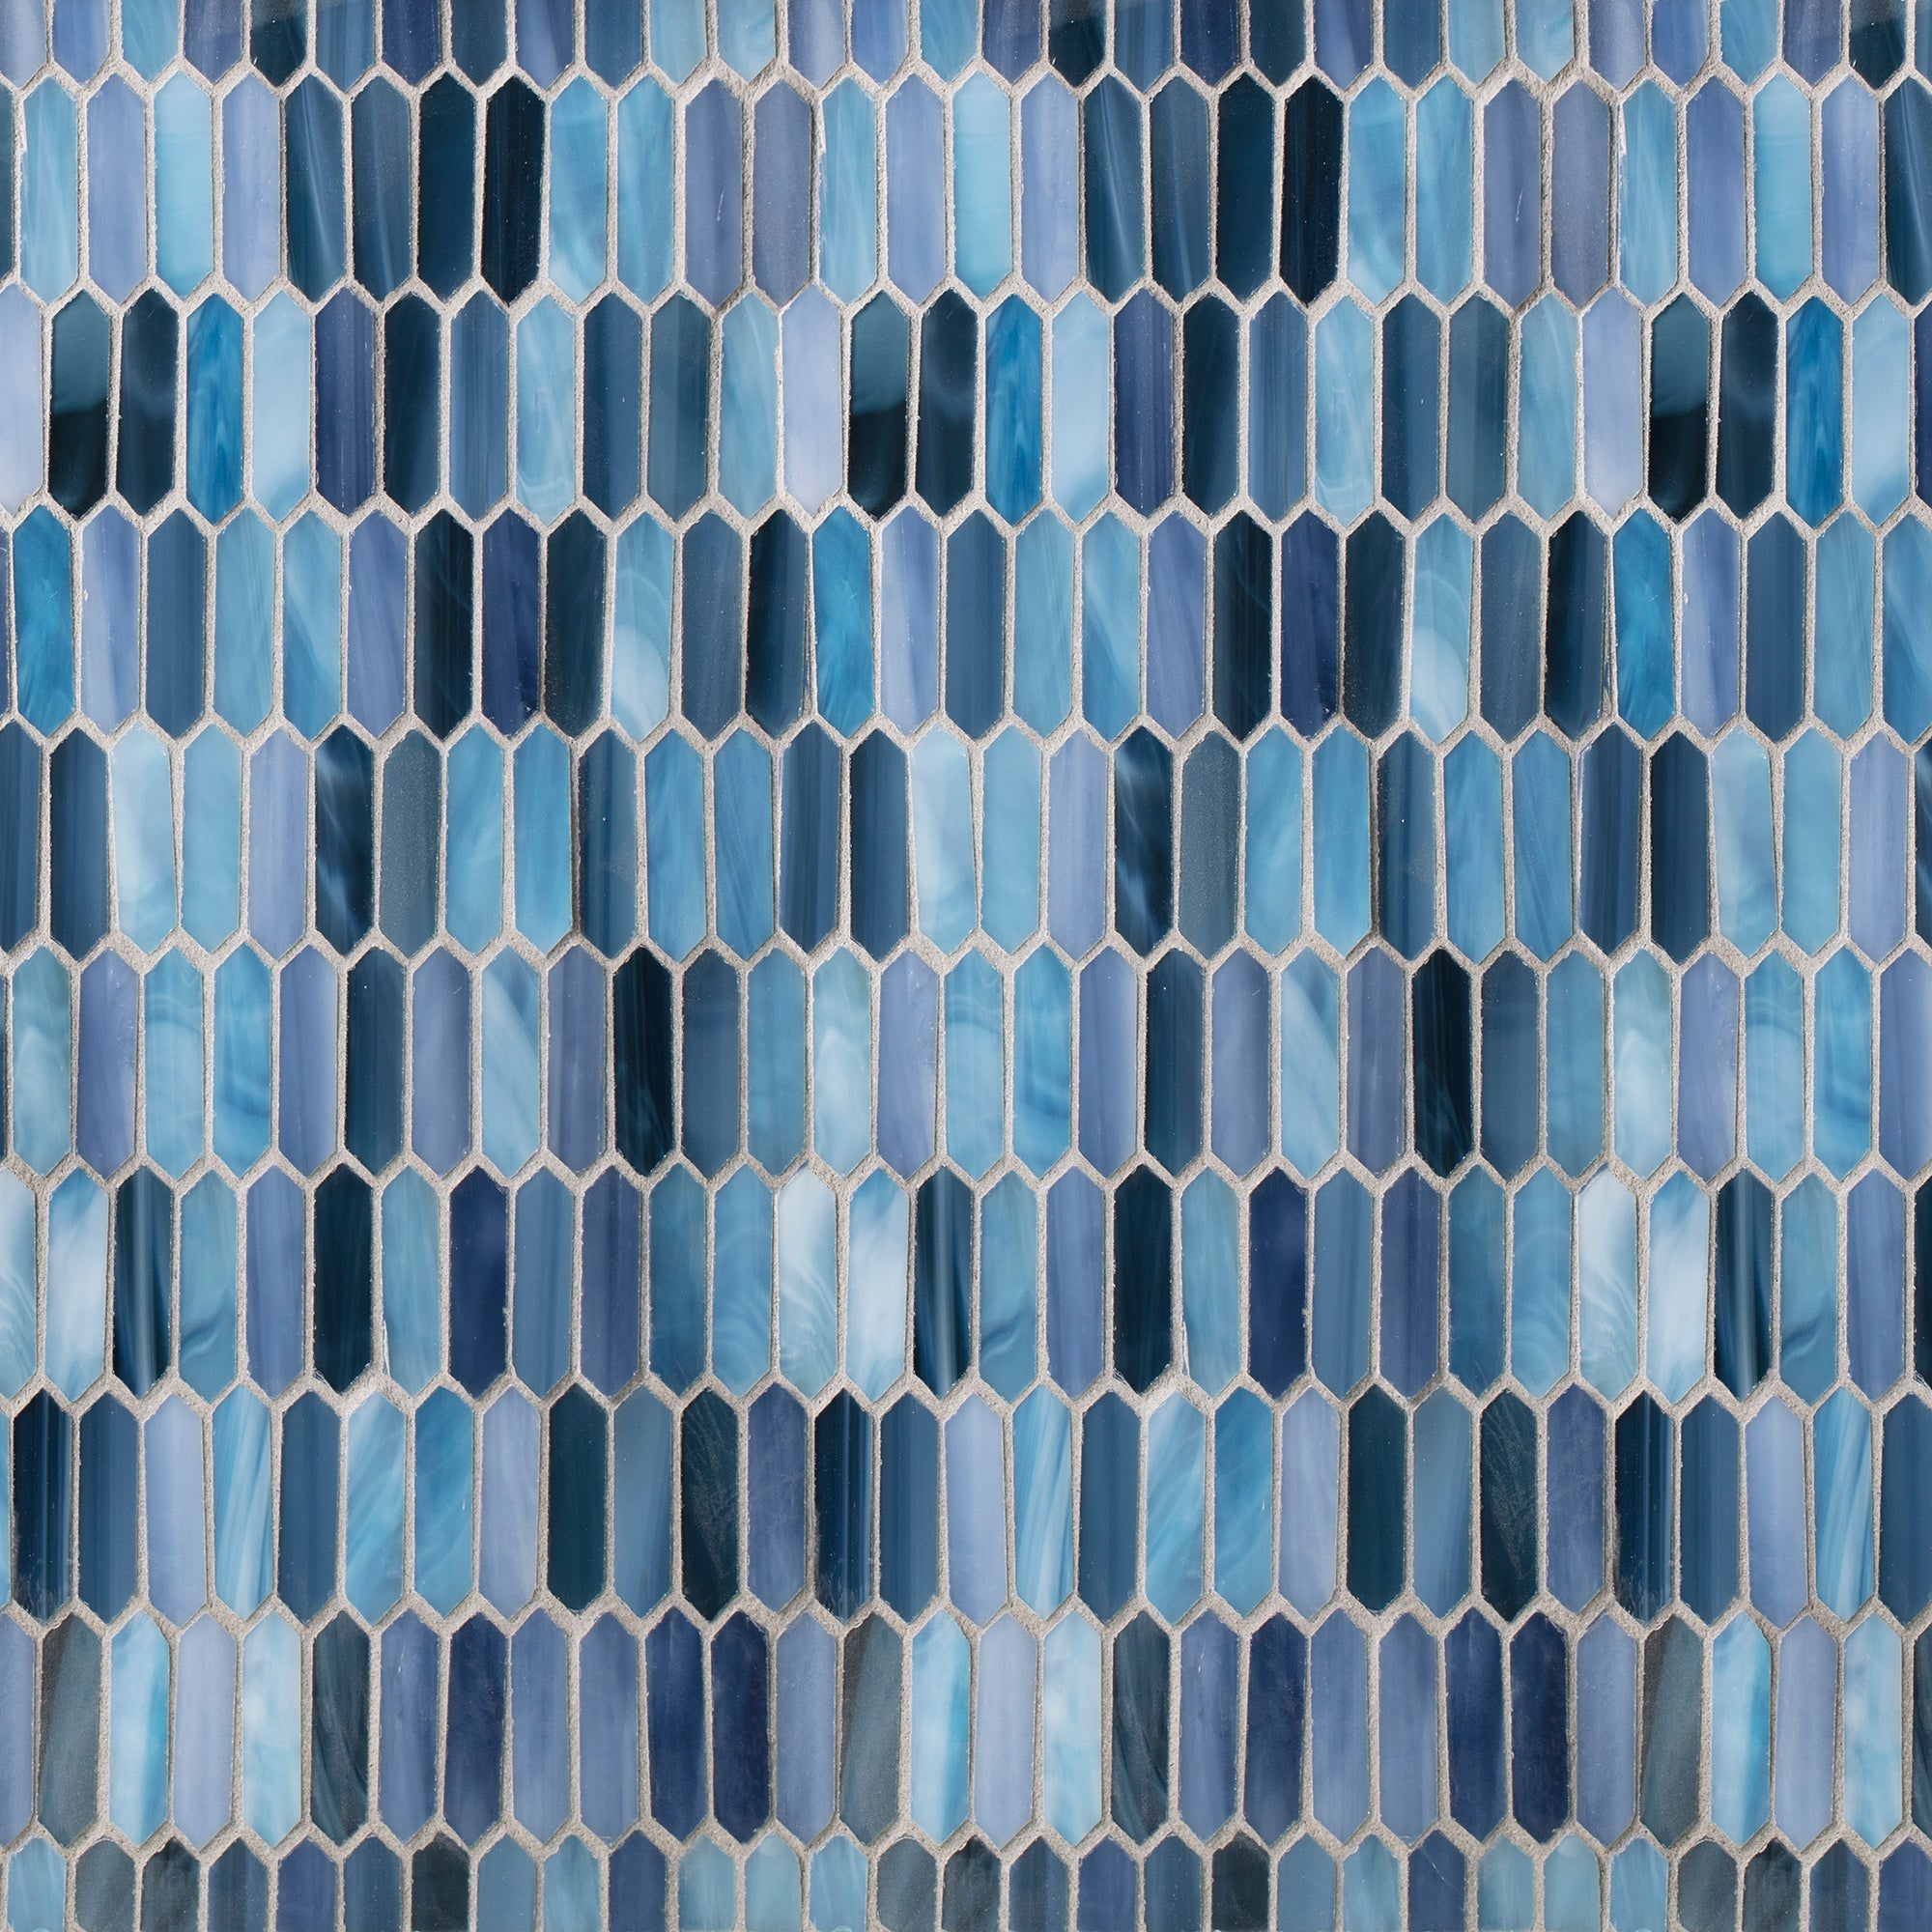 Tuxedo Park Bugle Blue Blend Swatch Card  Gloss Samples product photo